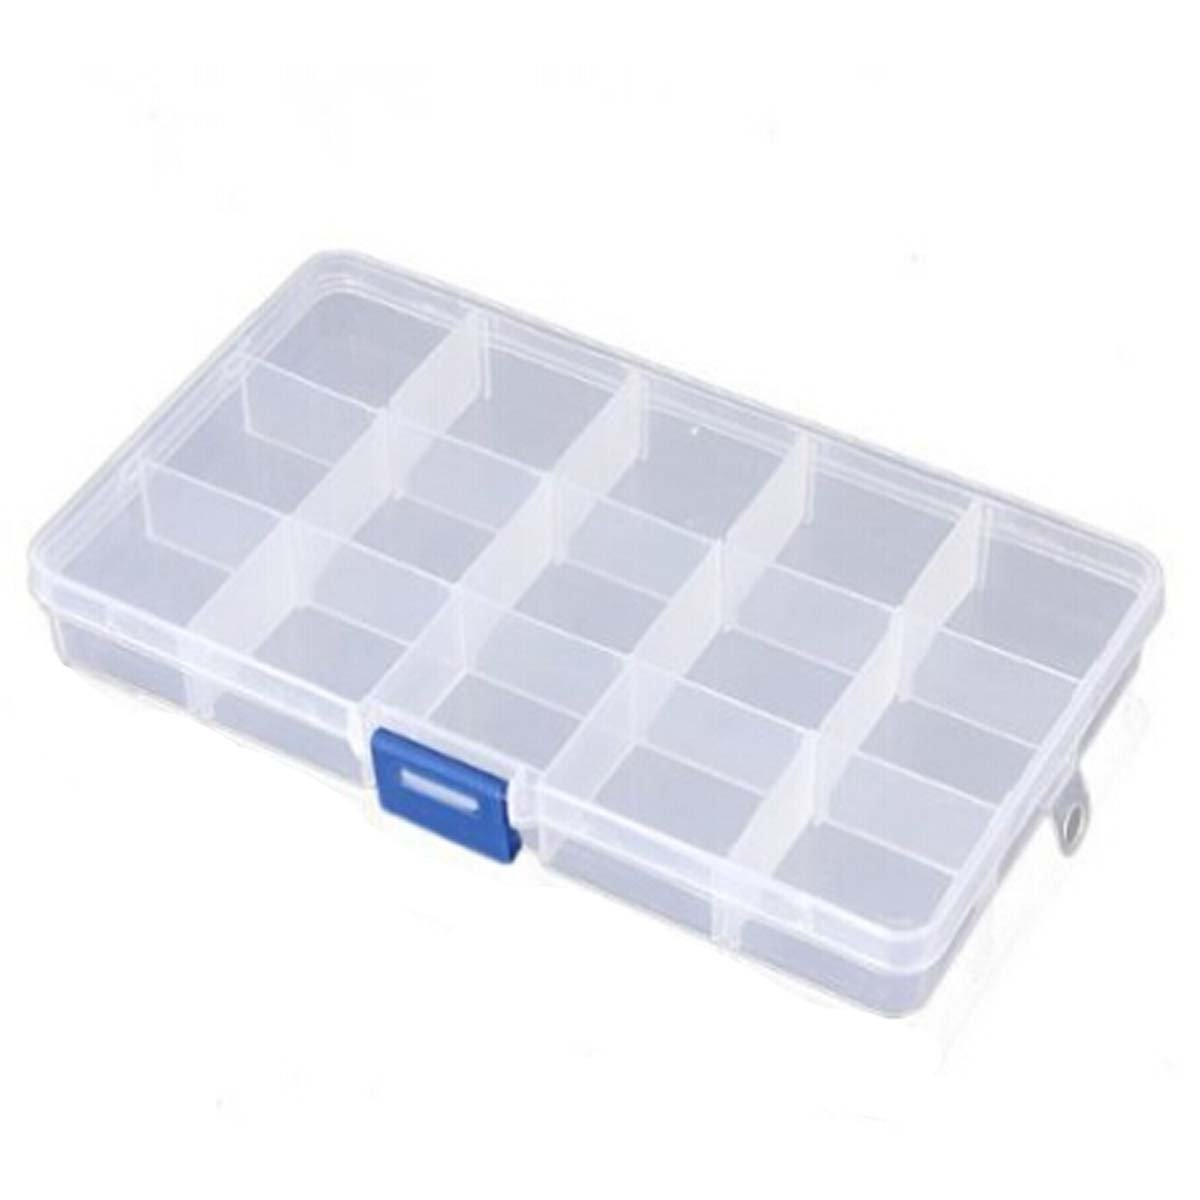 15 Grid Clear Adjustable Jewelry Bead Organizer Box Storage